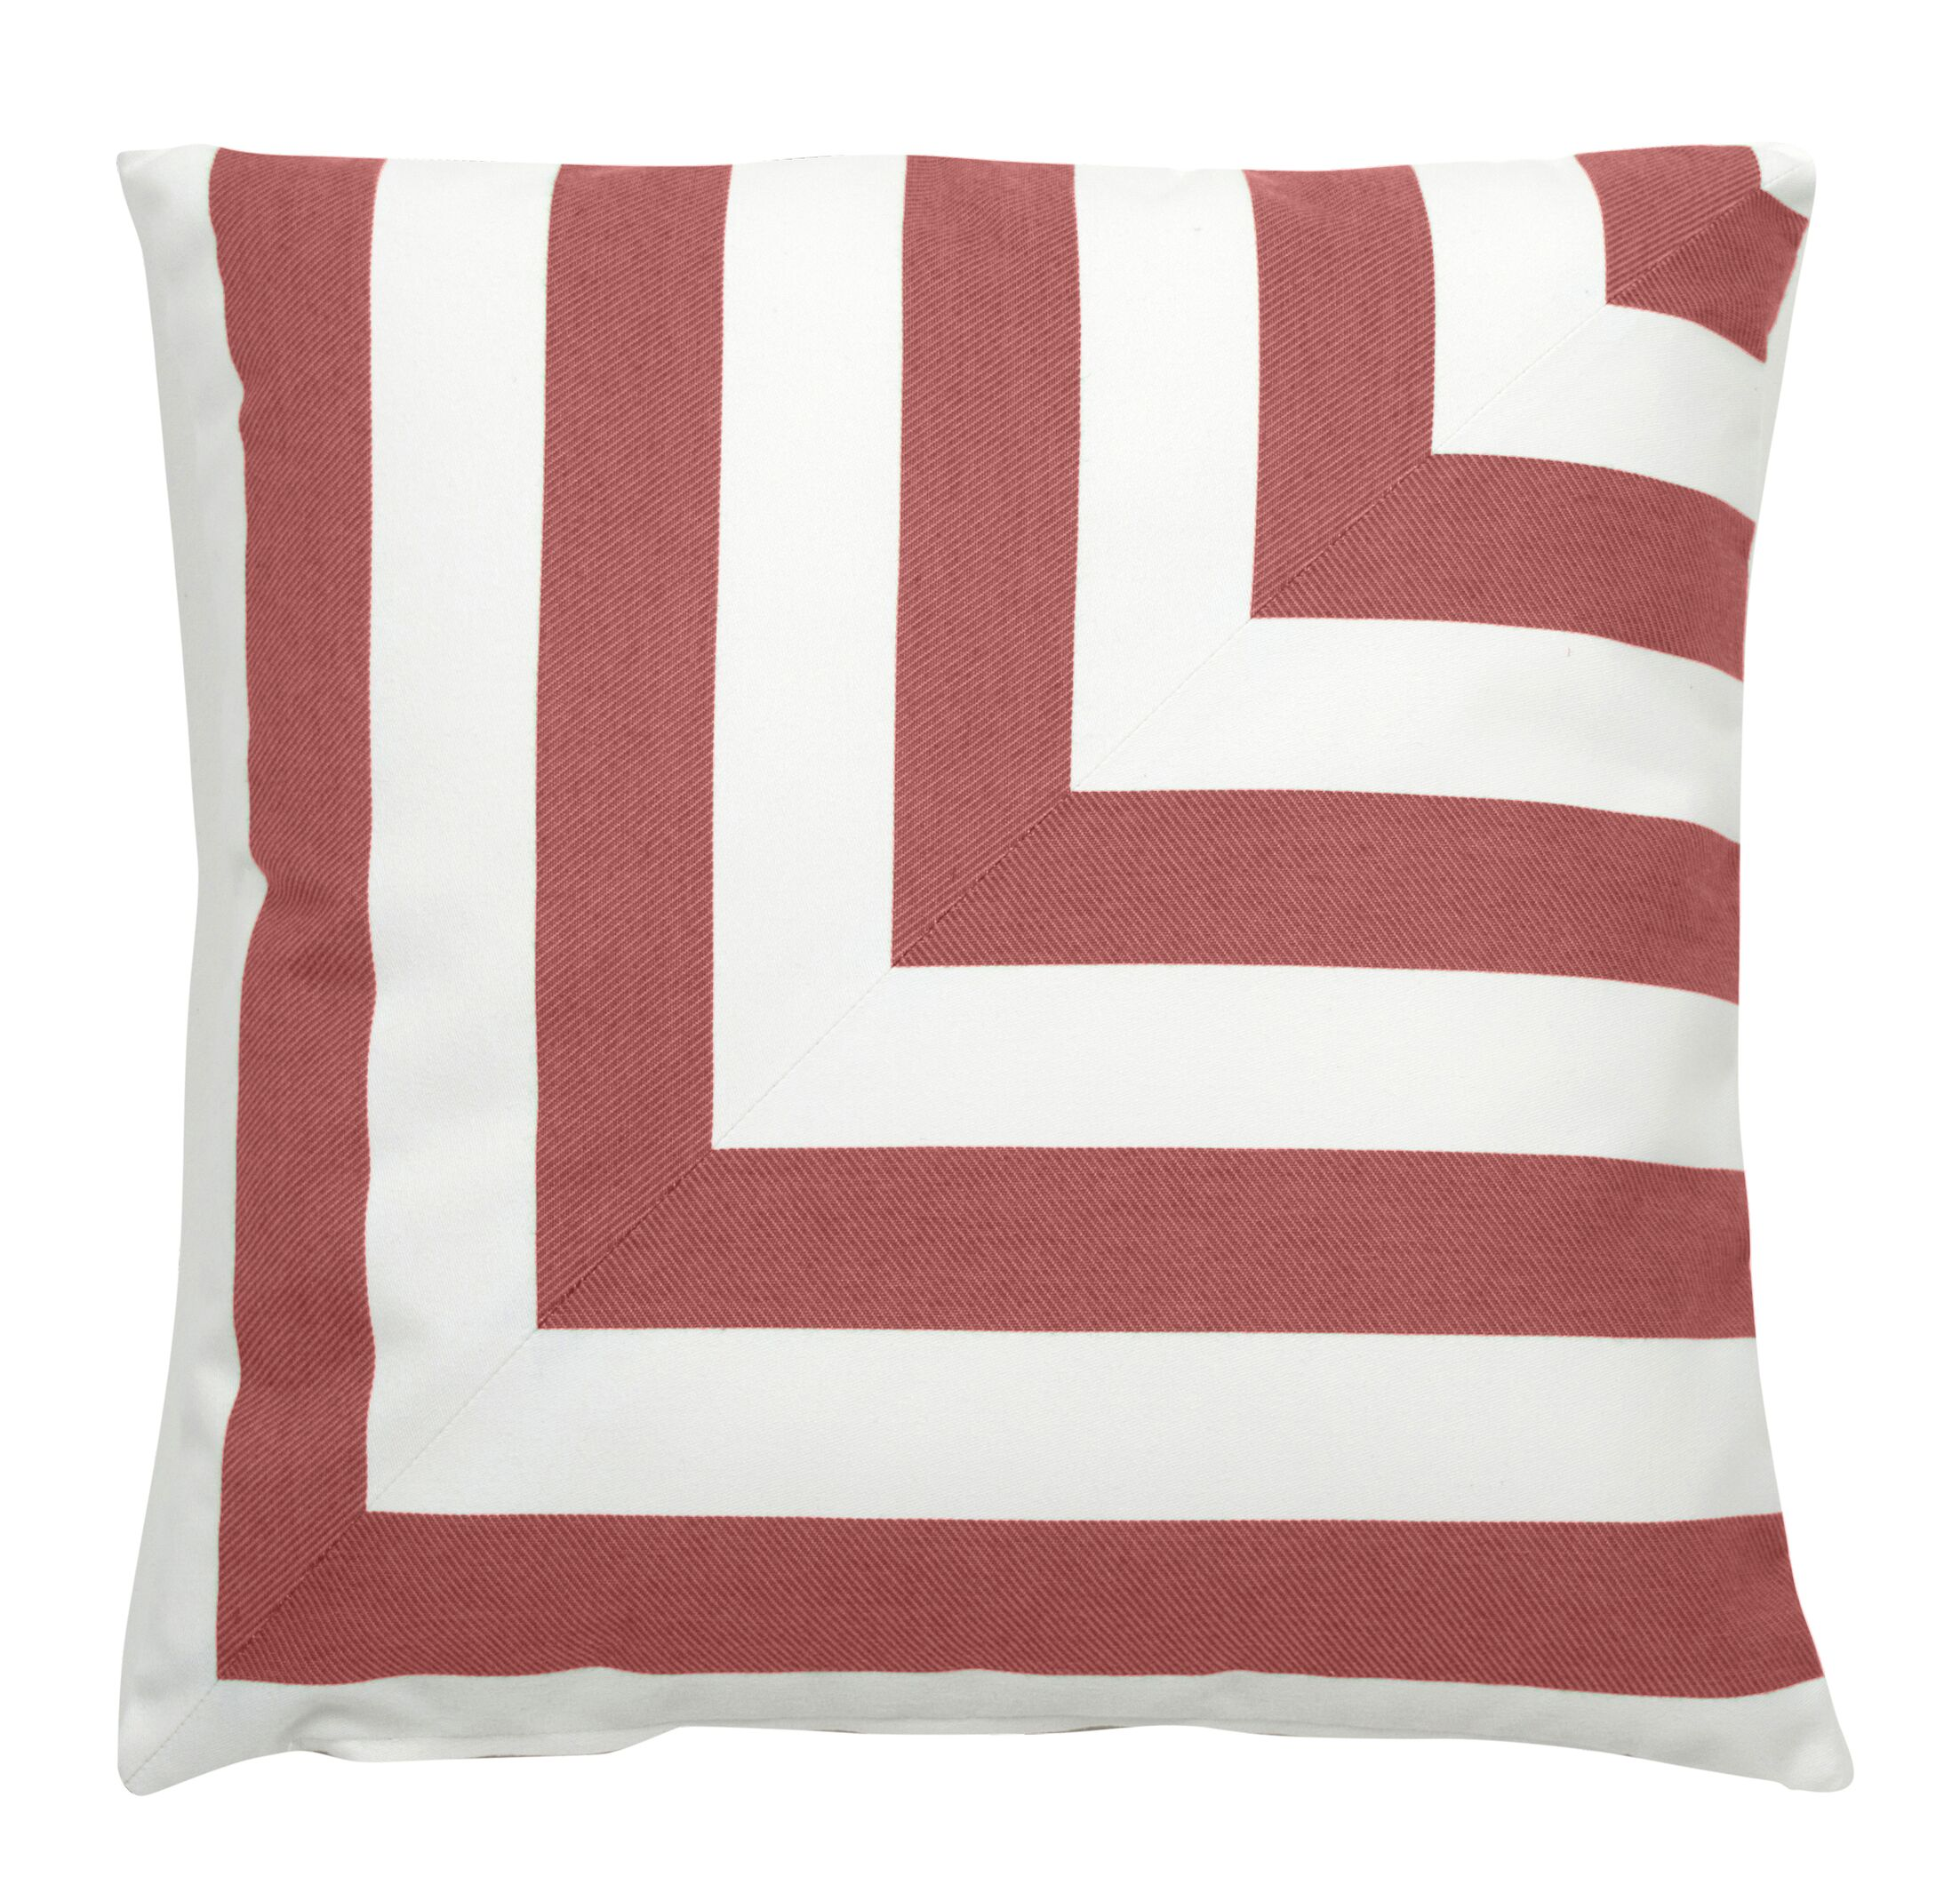 Halo Indoor/Outdoor Throw Pillow (Set of 2) Color: Flamingo, Size: 24